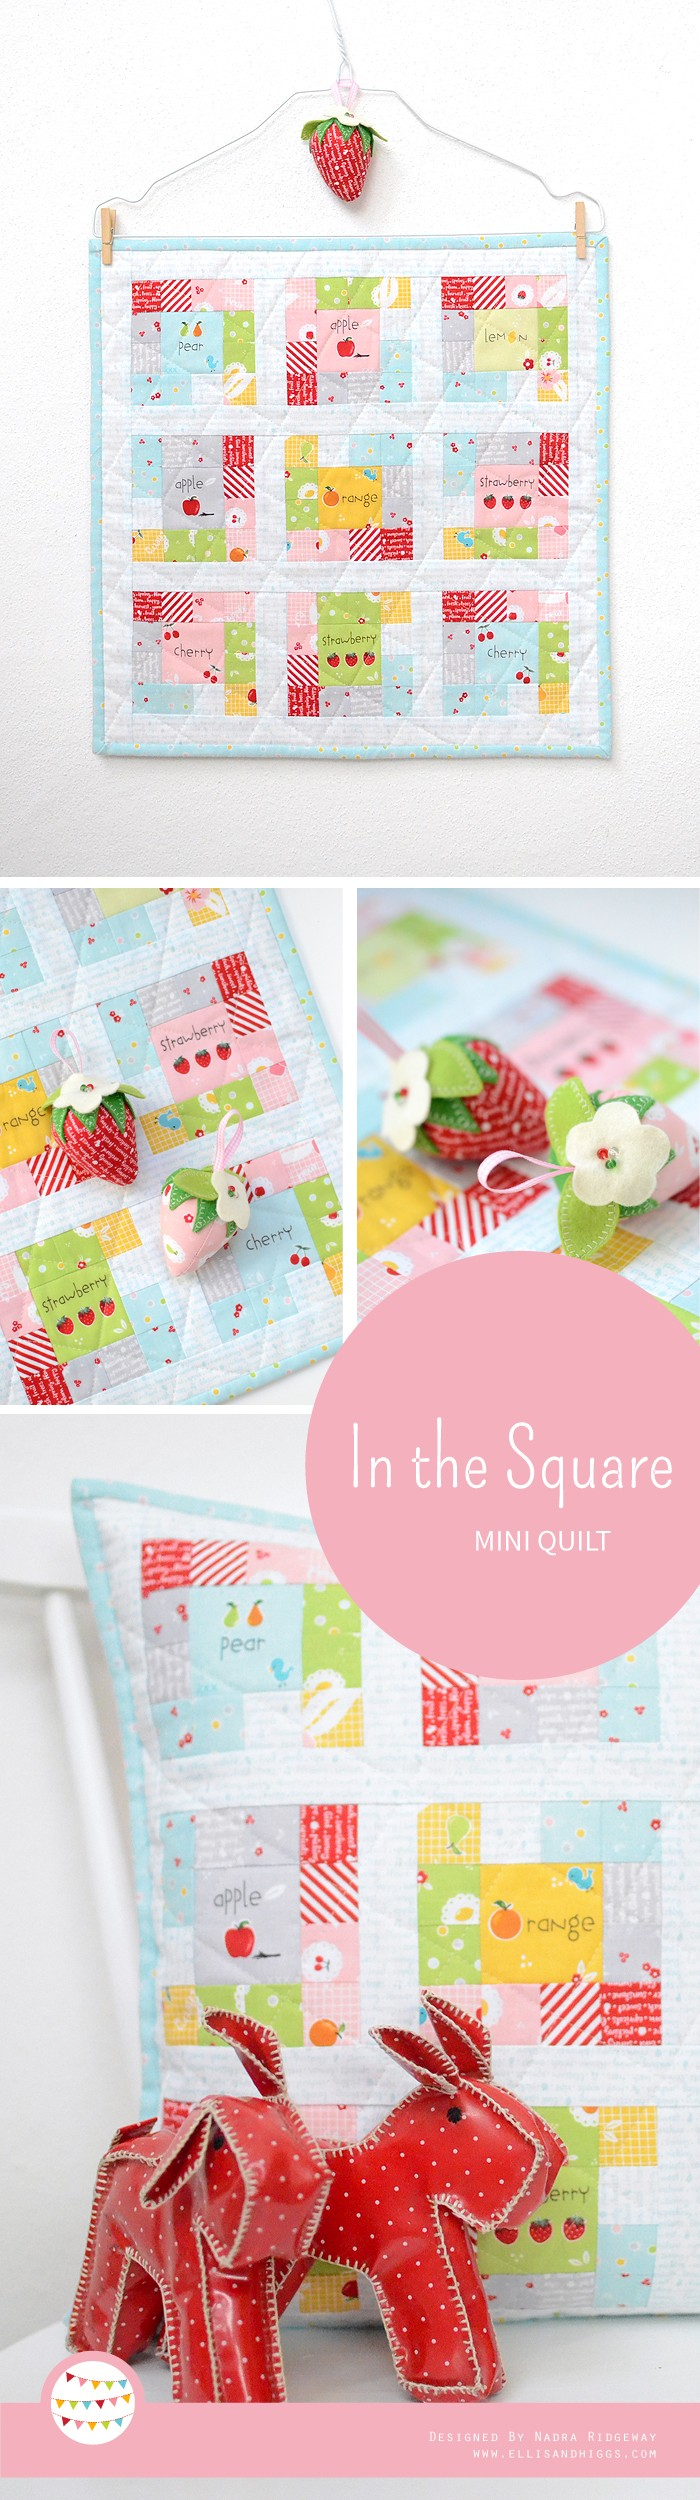 In the Square Mini Quilt Pattern by Nadra Ridgeway